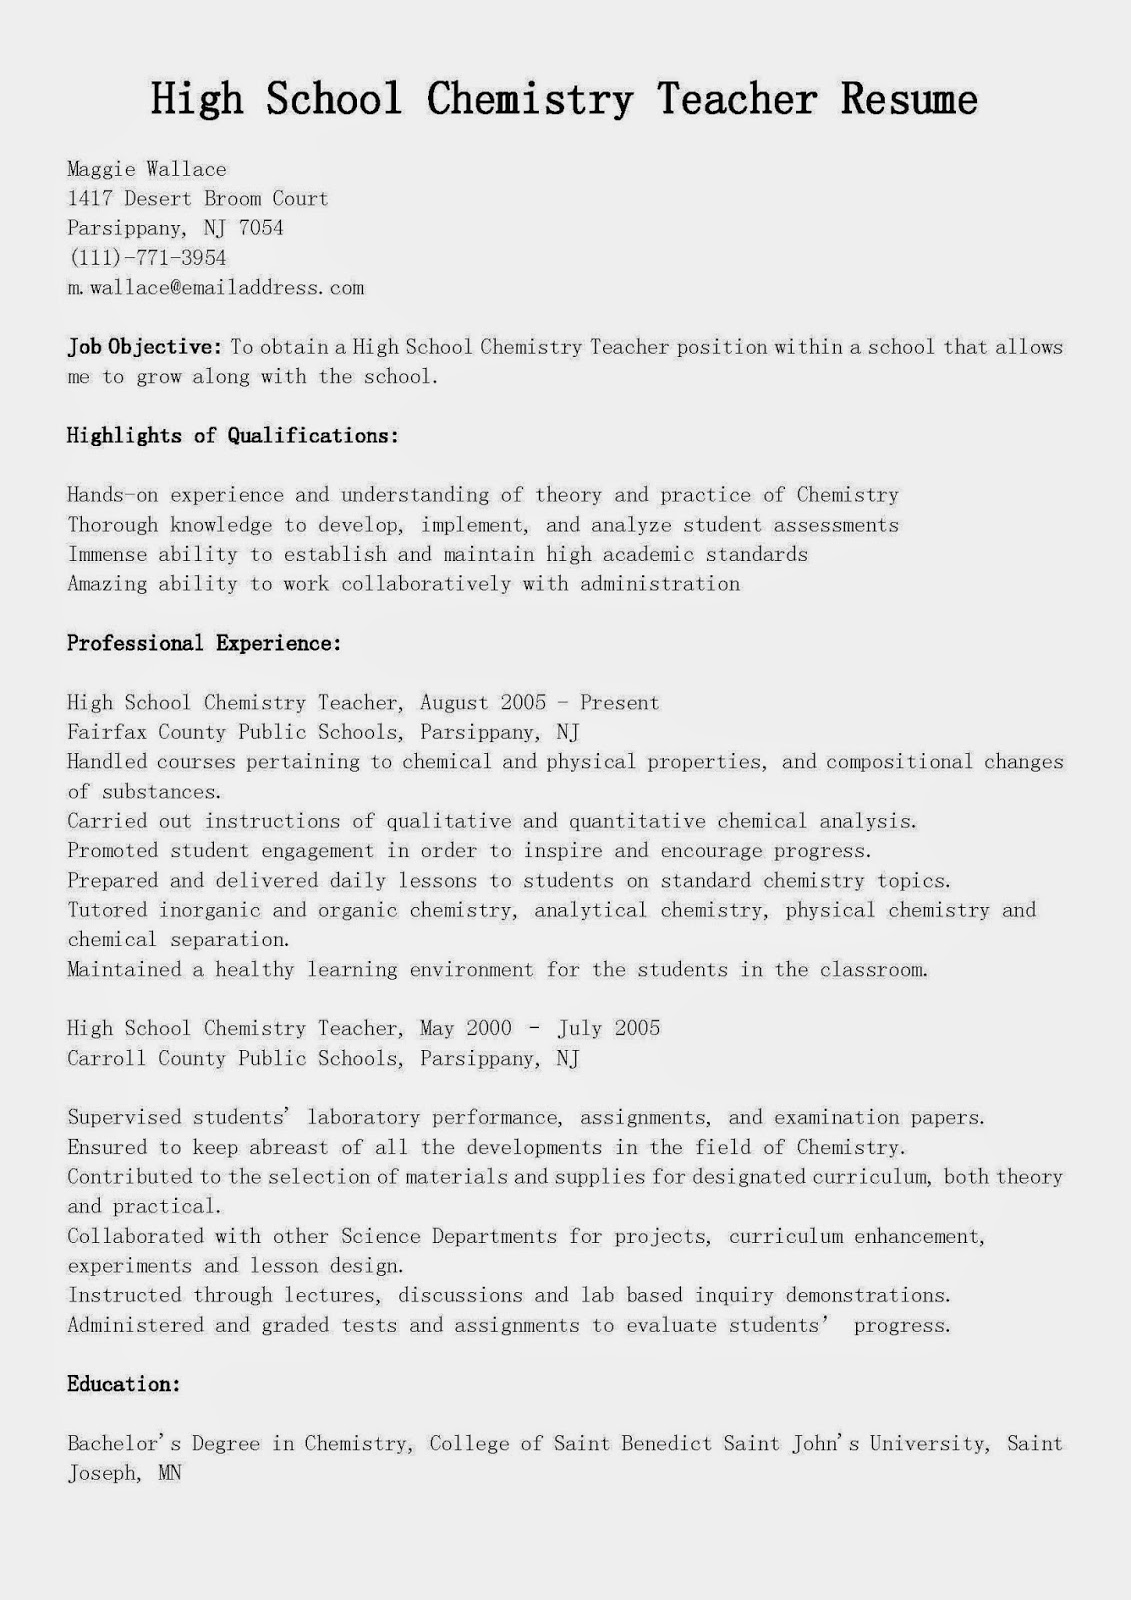 sample resume for high school chemistry teacher